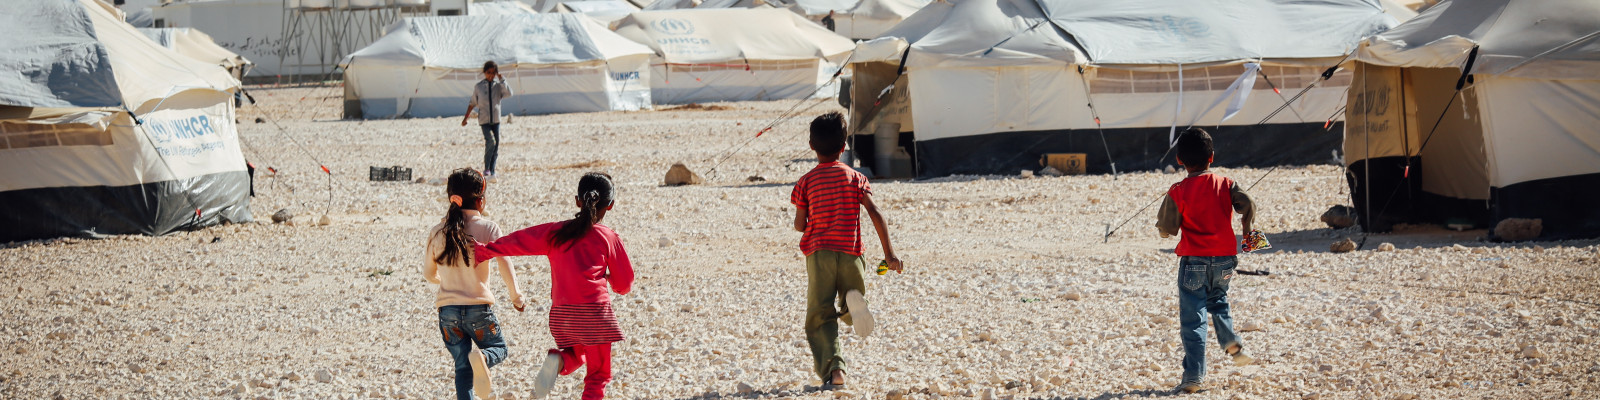 Kids in refugee camp